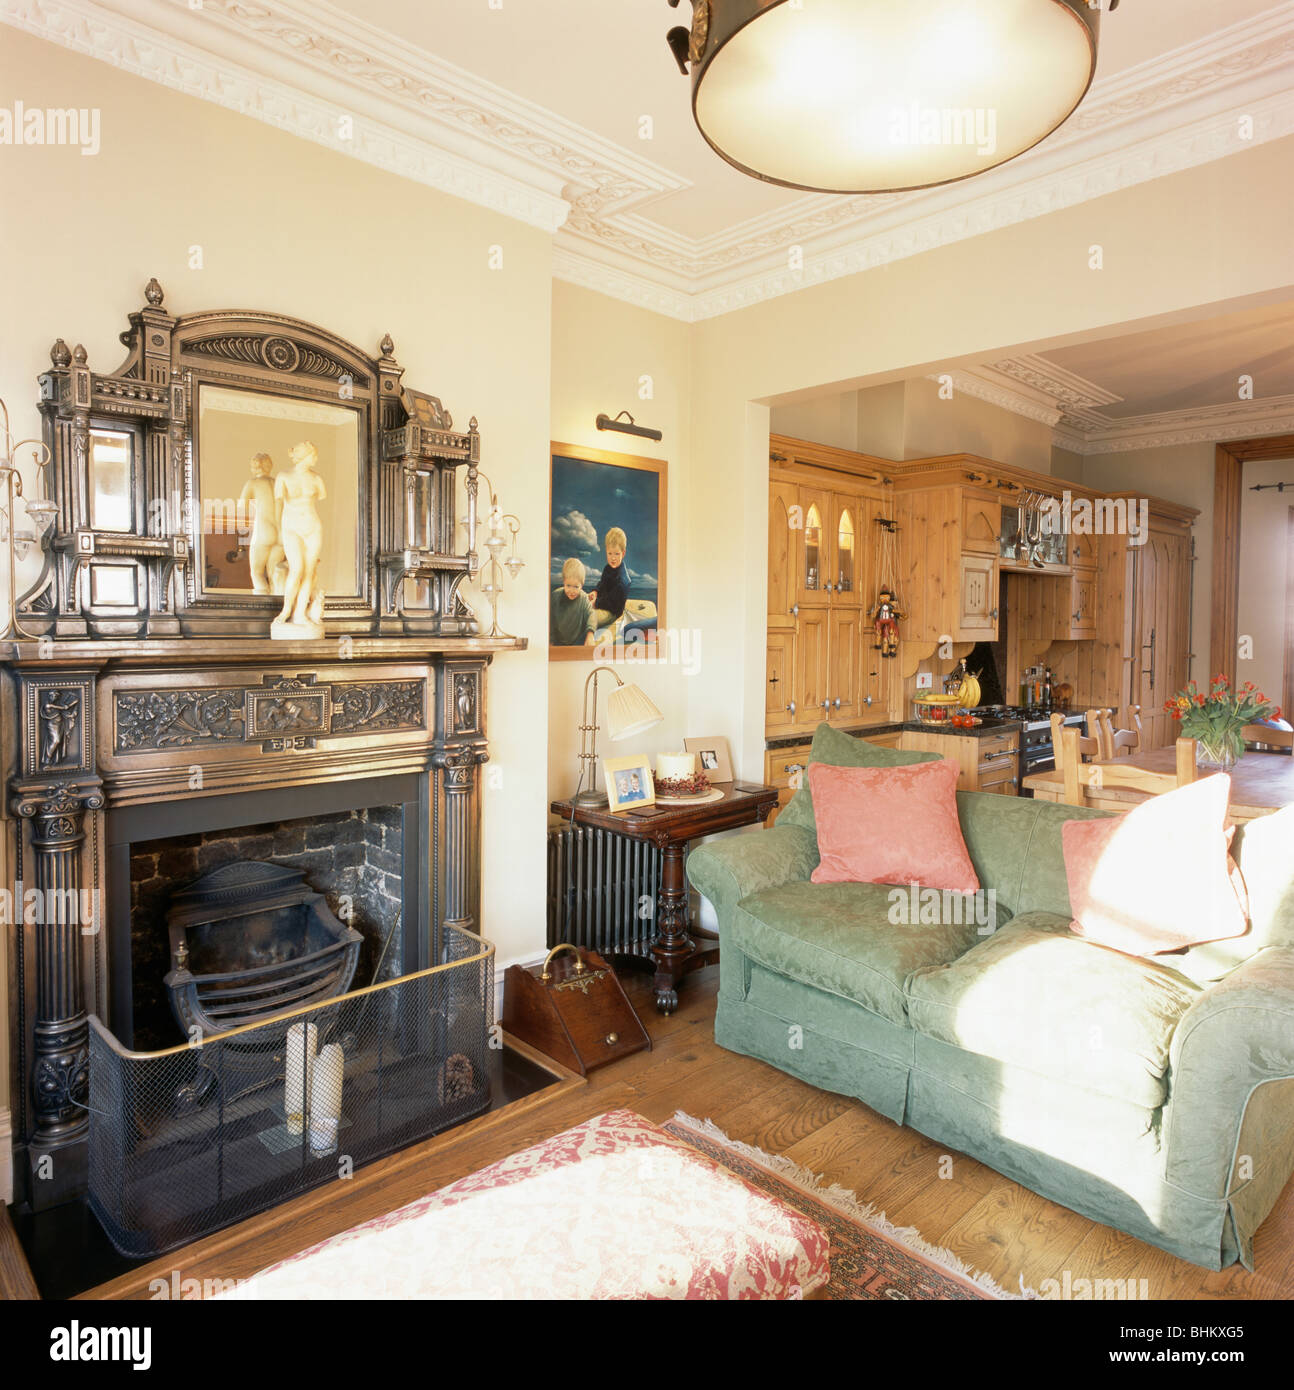 Cast Iron Over Mantel Mirror And Fireplace In Open Plan Traditional Living Room Kitchen Dining